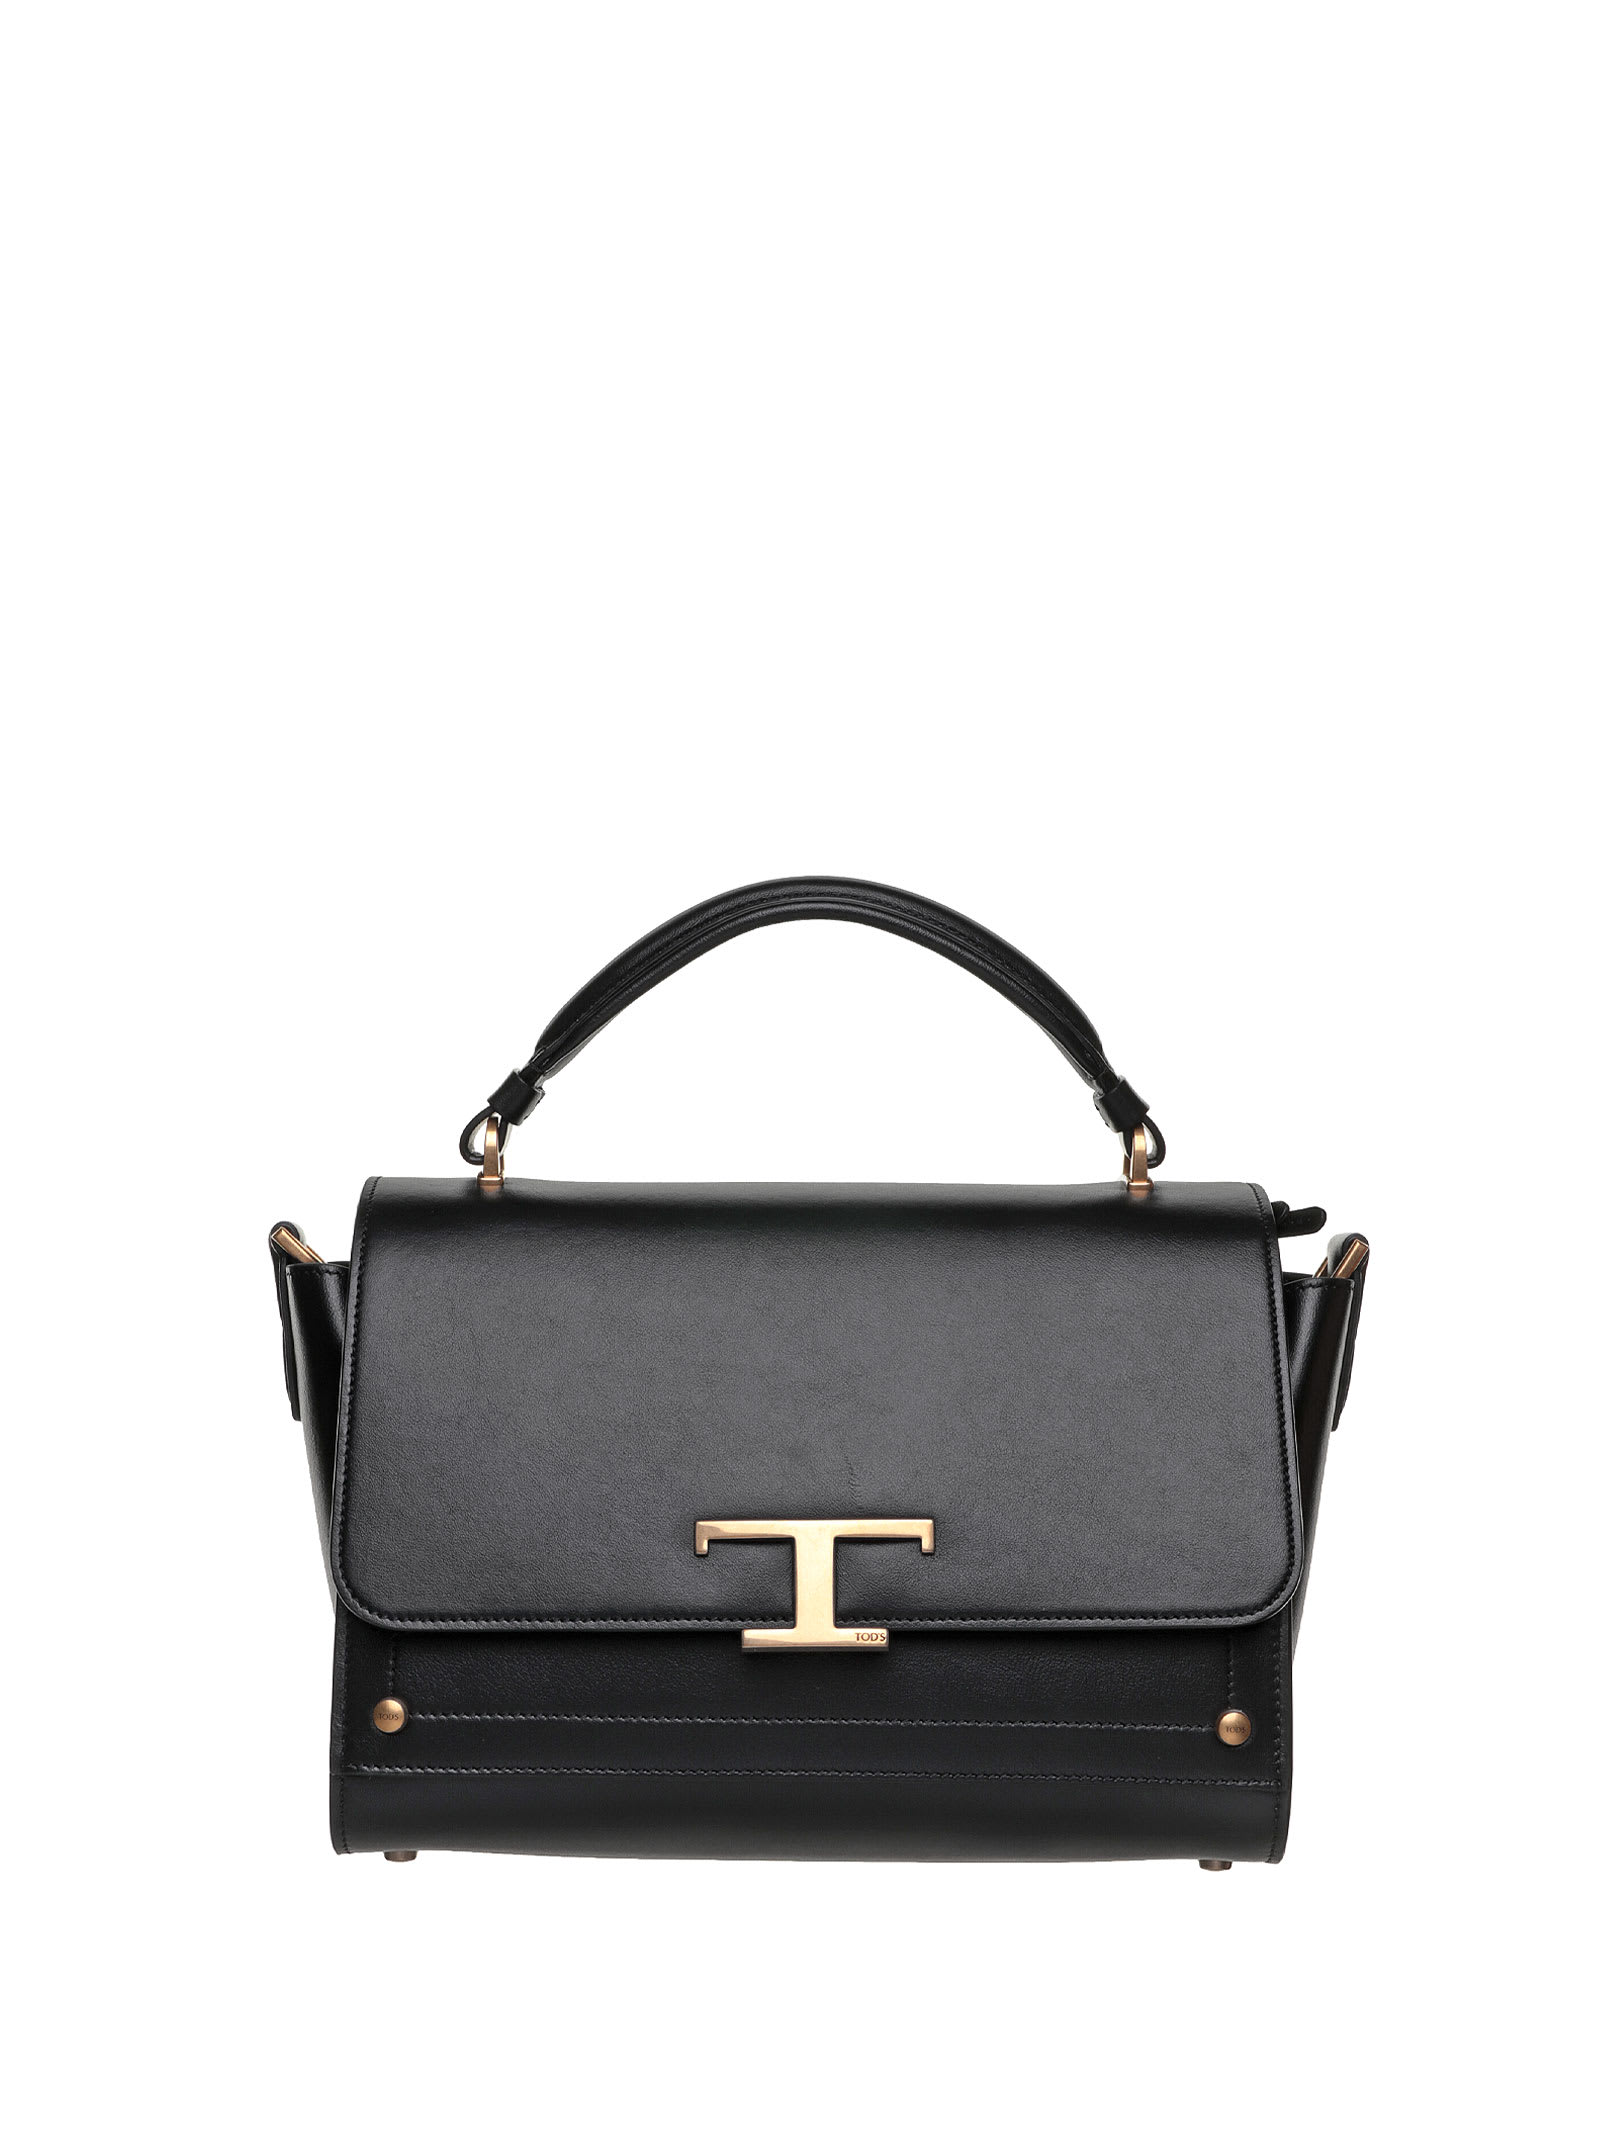 Tods Tods Black Leather Bag